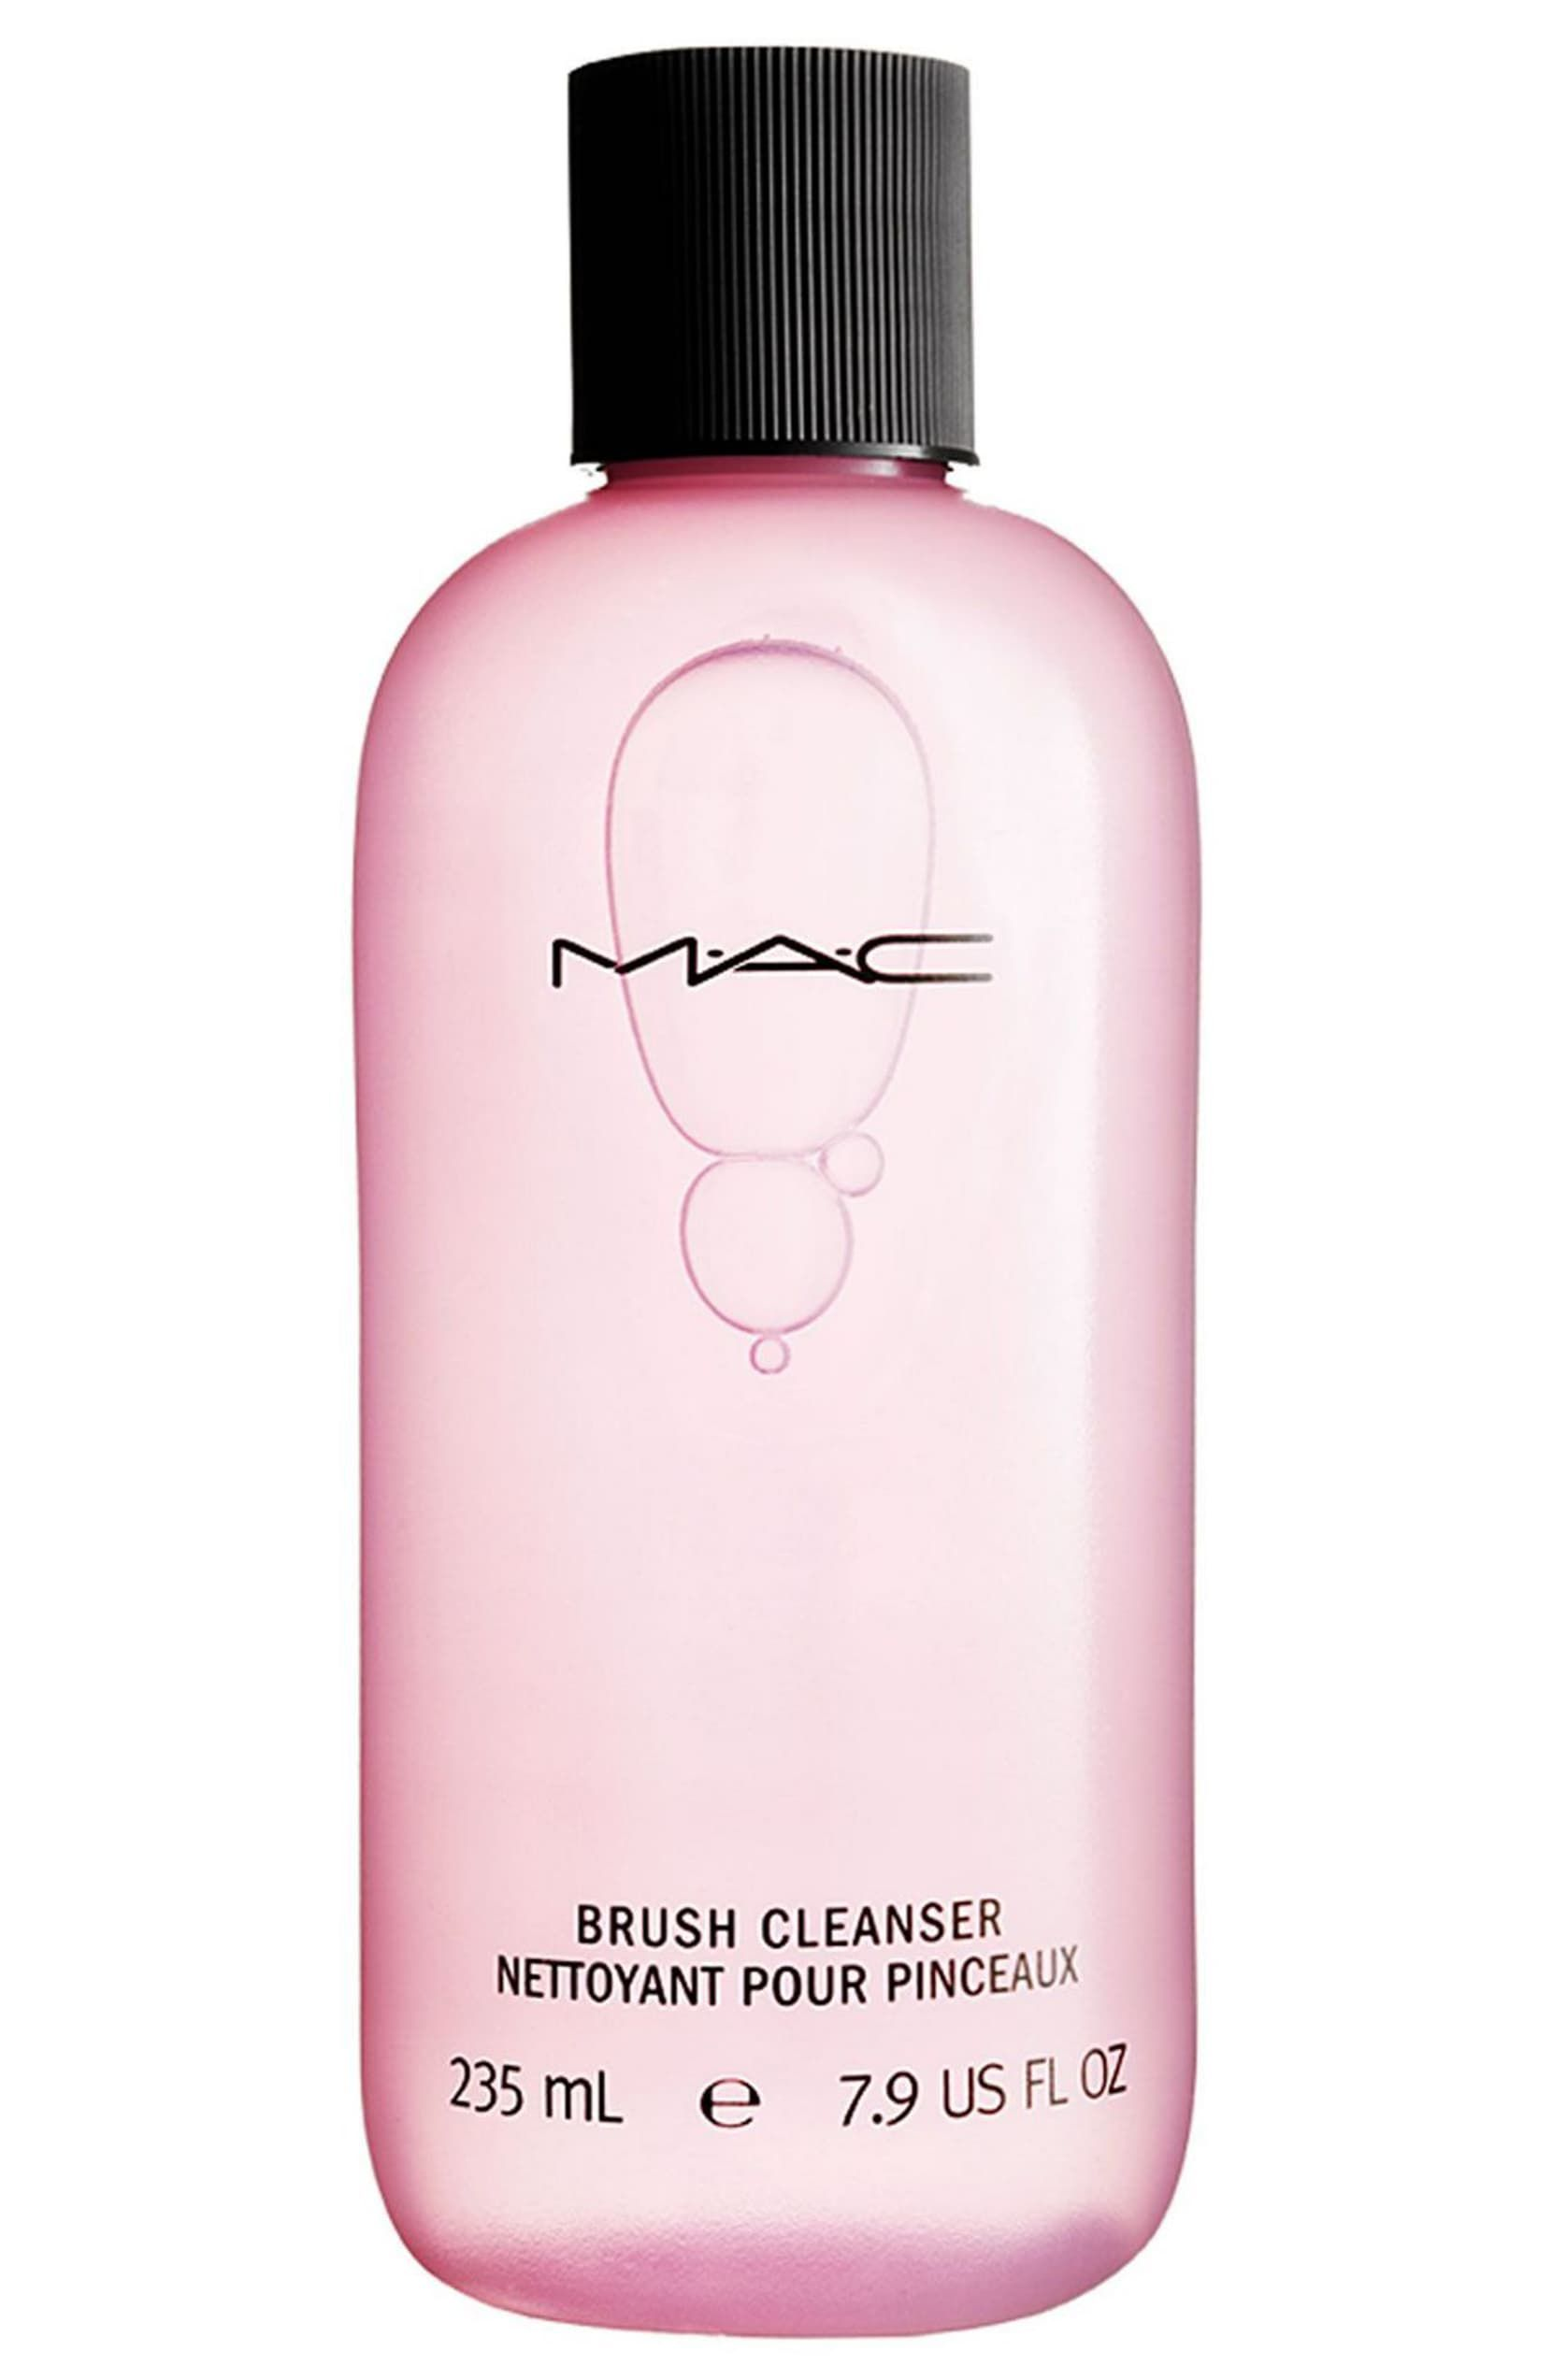 The 17 Best Makeup Brush Cleaners Of 2021